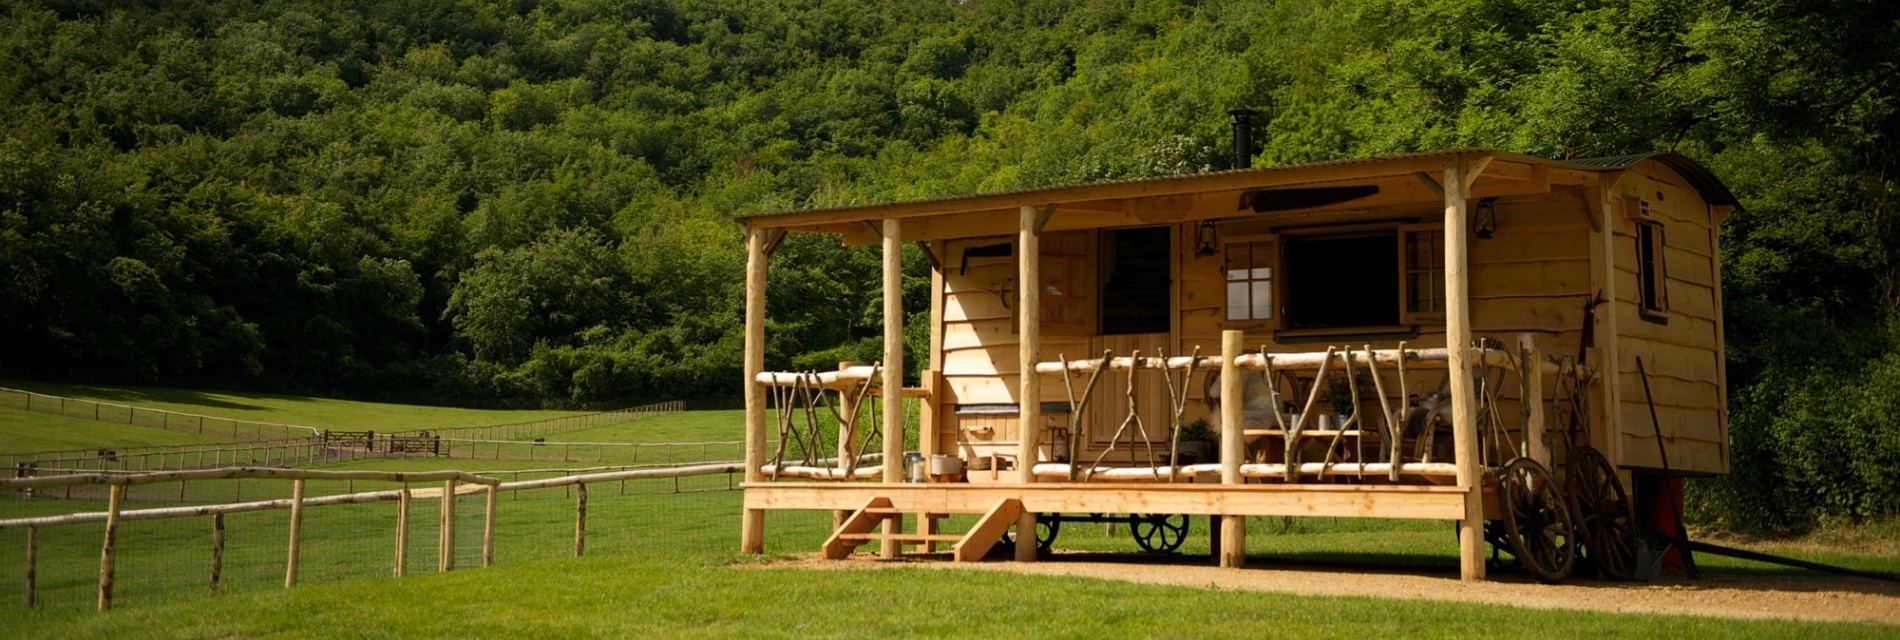 Gift Voucher for Loose Reins Glamping Holidays in Dorset